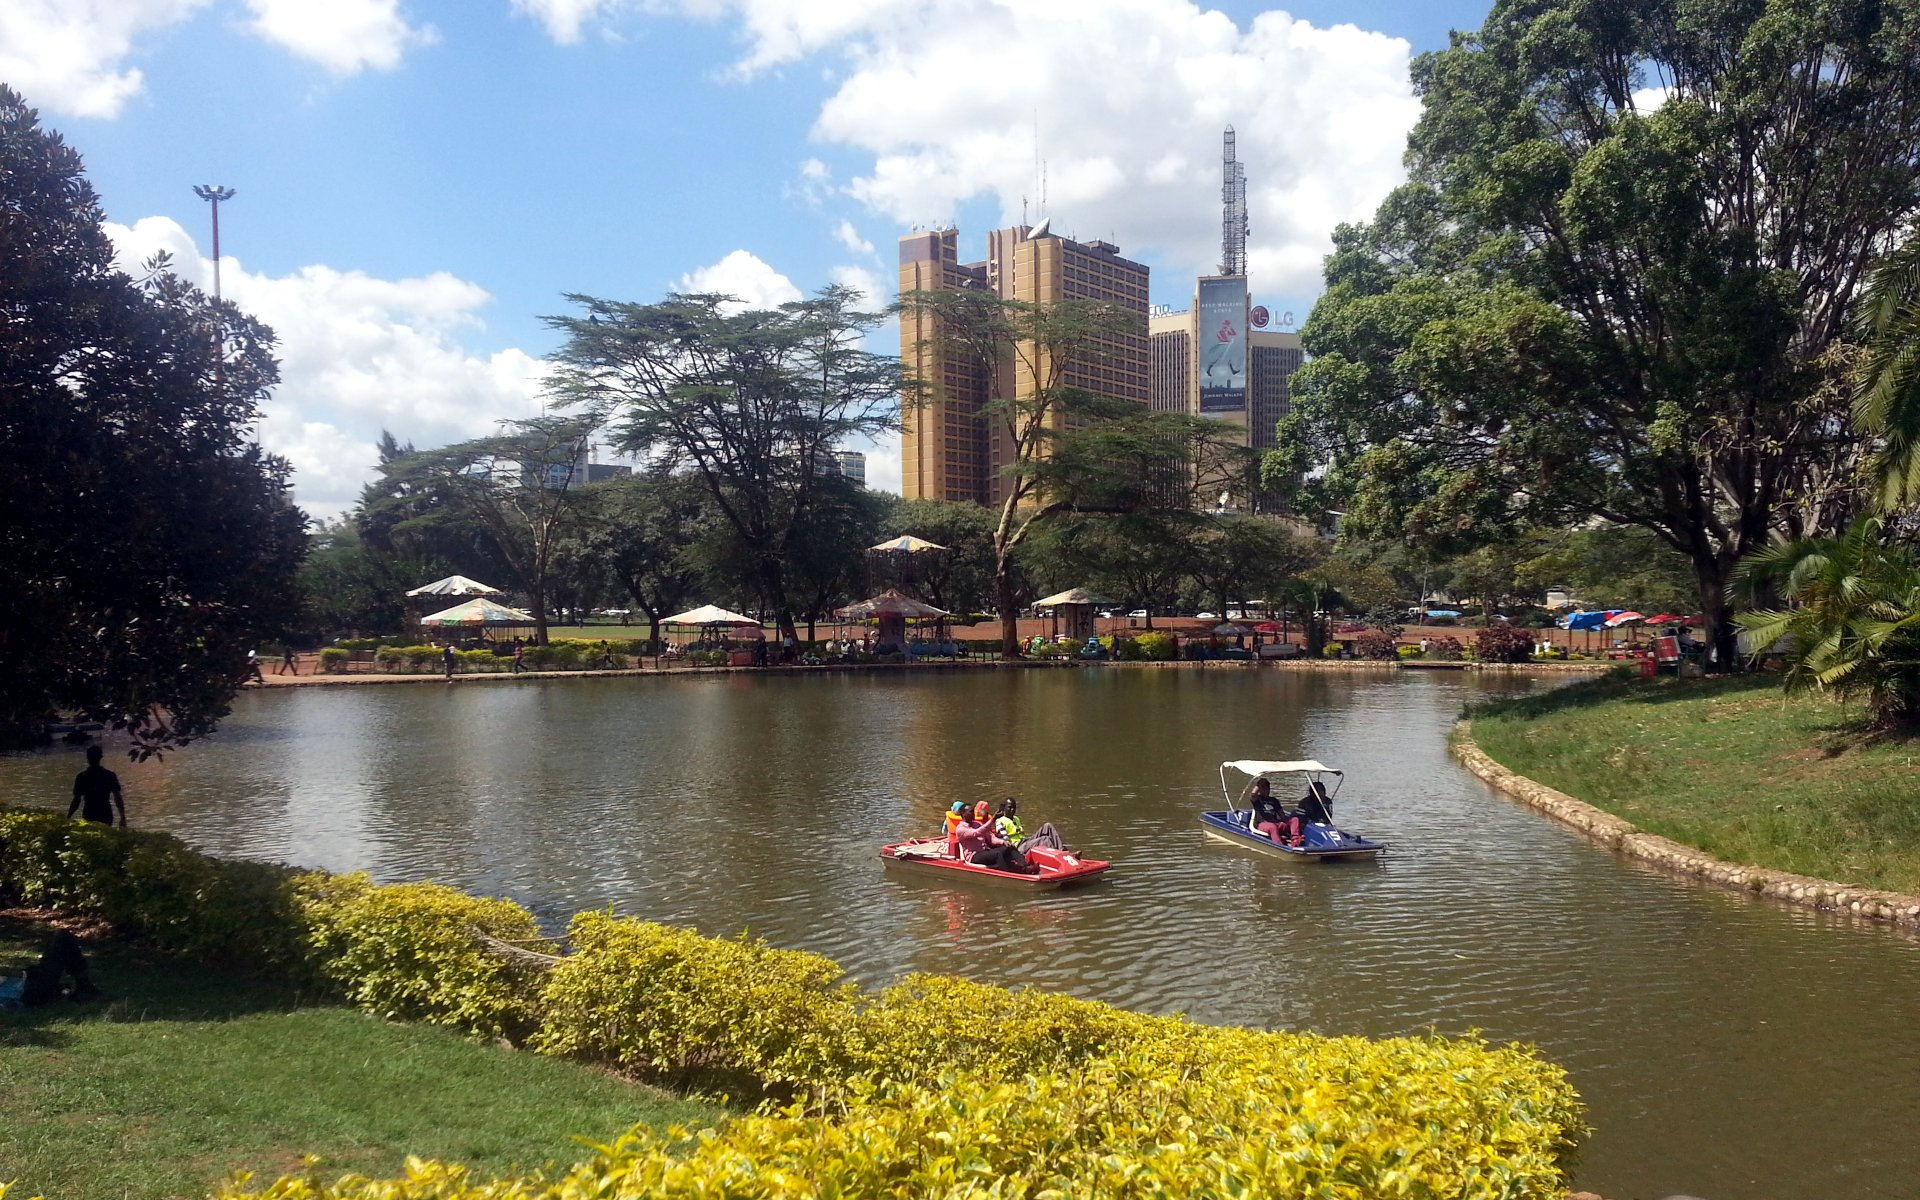 Uhuru Park is a 31.9-acre recreational park adjacent to the Nairobi Central Business District. It contains an artificial lake and several national monuments. It is also set to benefit from te planned smart lights that will be installed in major parks in the city.